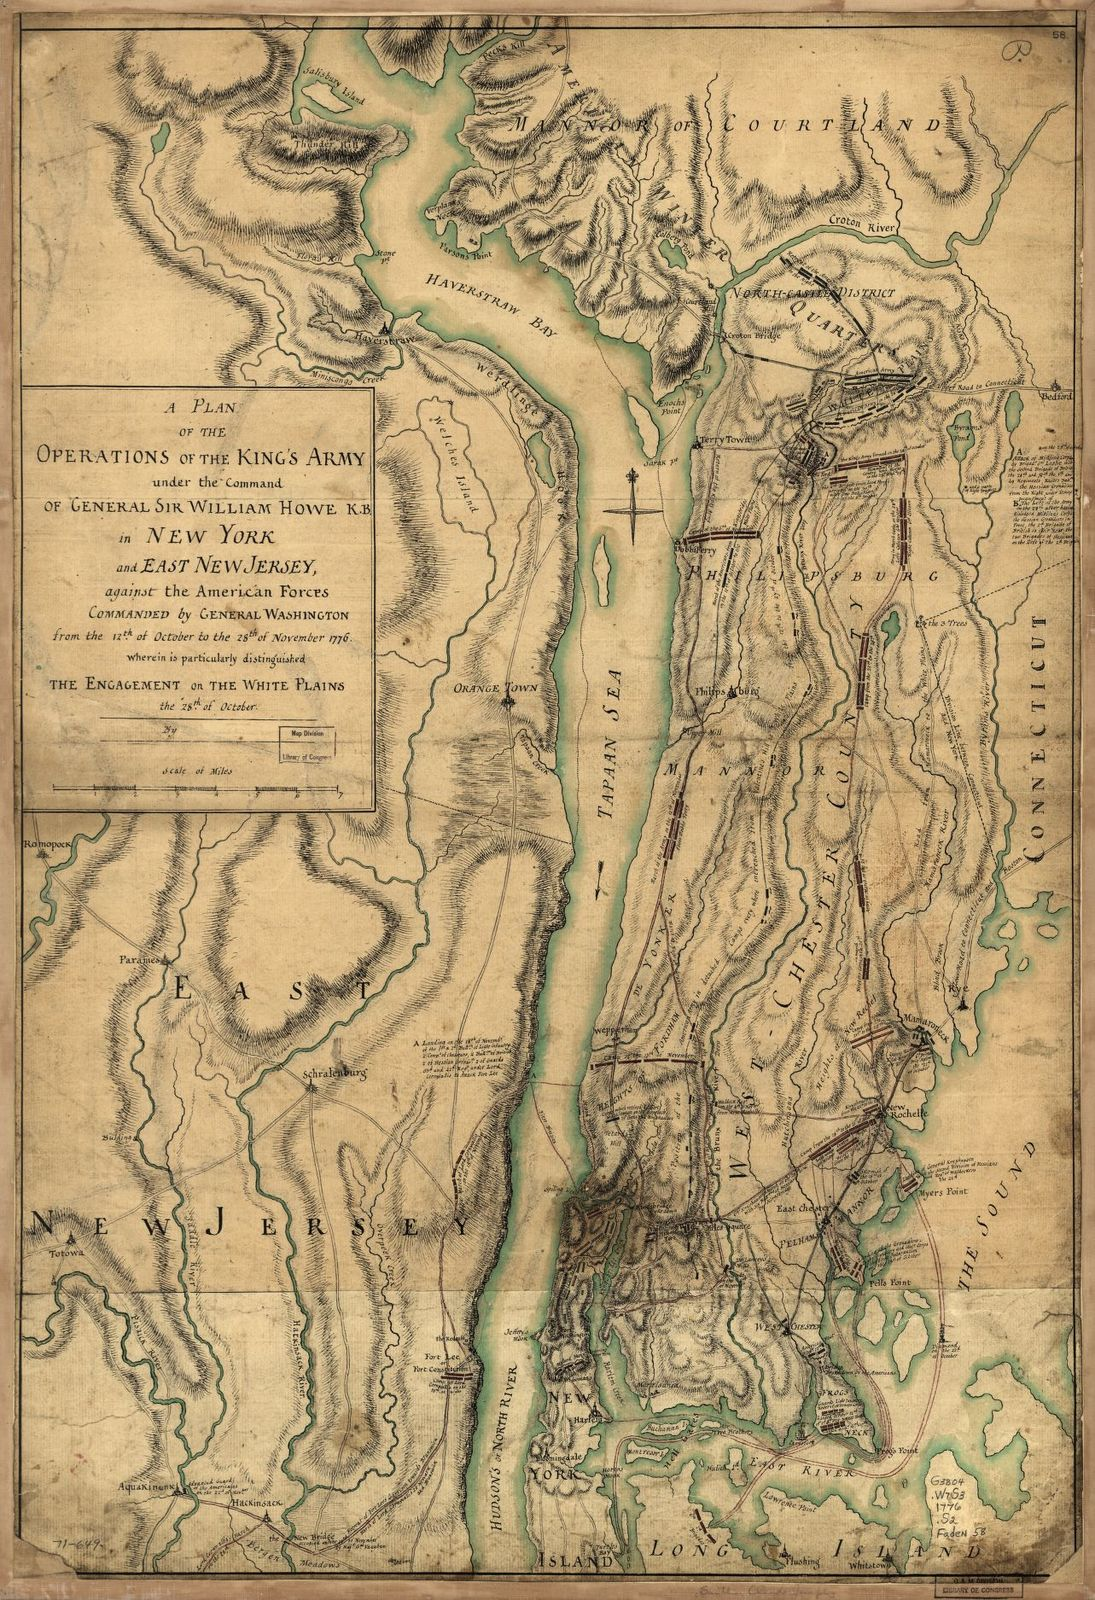 A plan of the operations of the King's army under the command of General Sir William Howe, K.B. in New York and east New Jersey, against the American forces commanded by General Washington from the 12th of October to the 28th of November 1776, wherein is particularly distinguished the engagement on the White Plains the 28th of October.